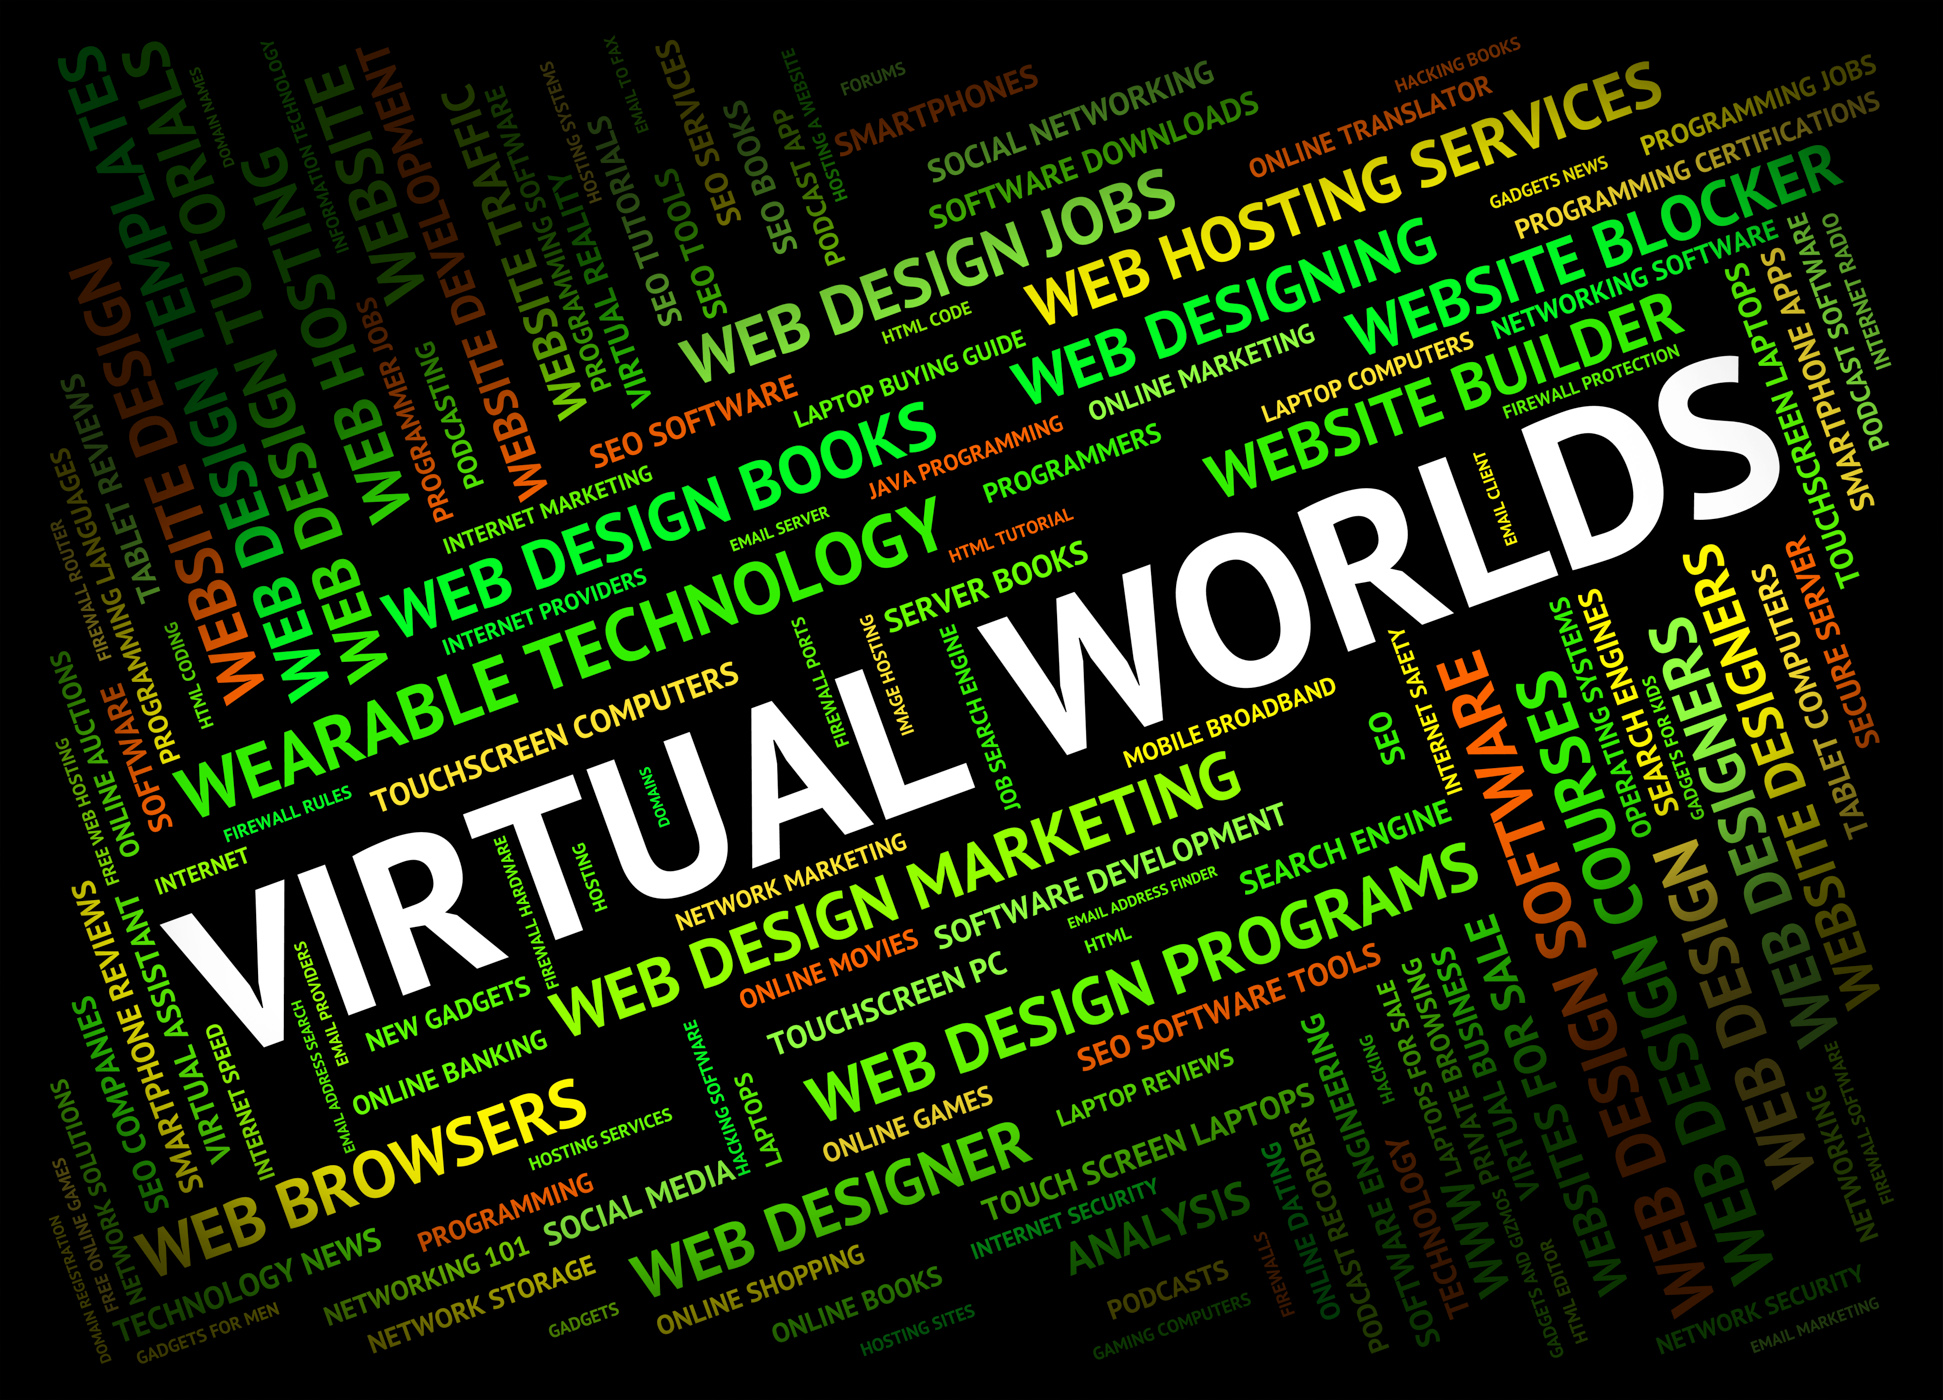 Virtual worlds indicates independent contractor and freelance photo